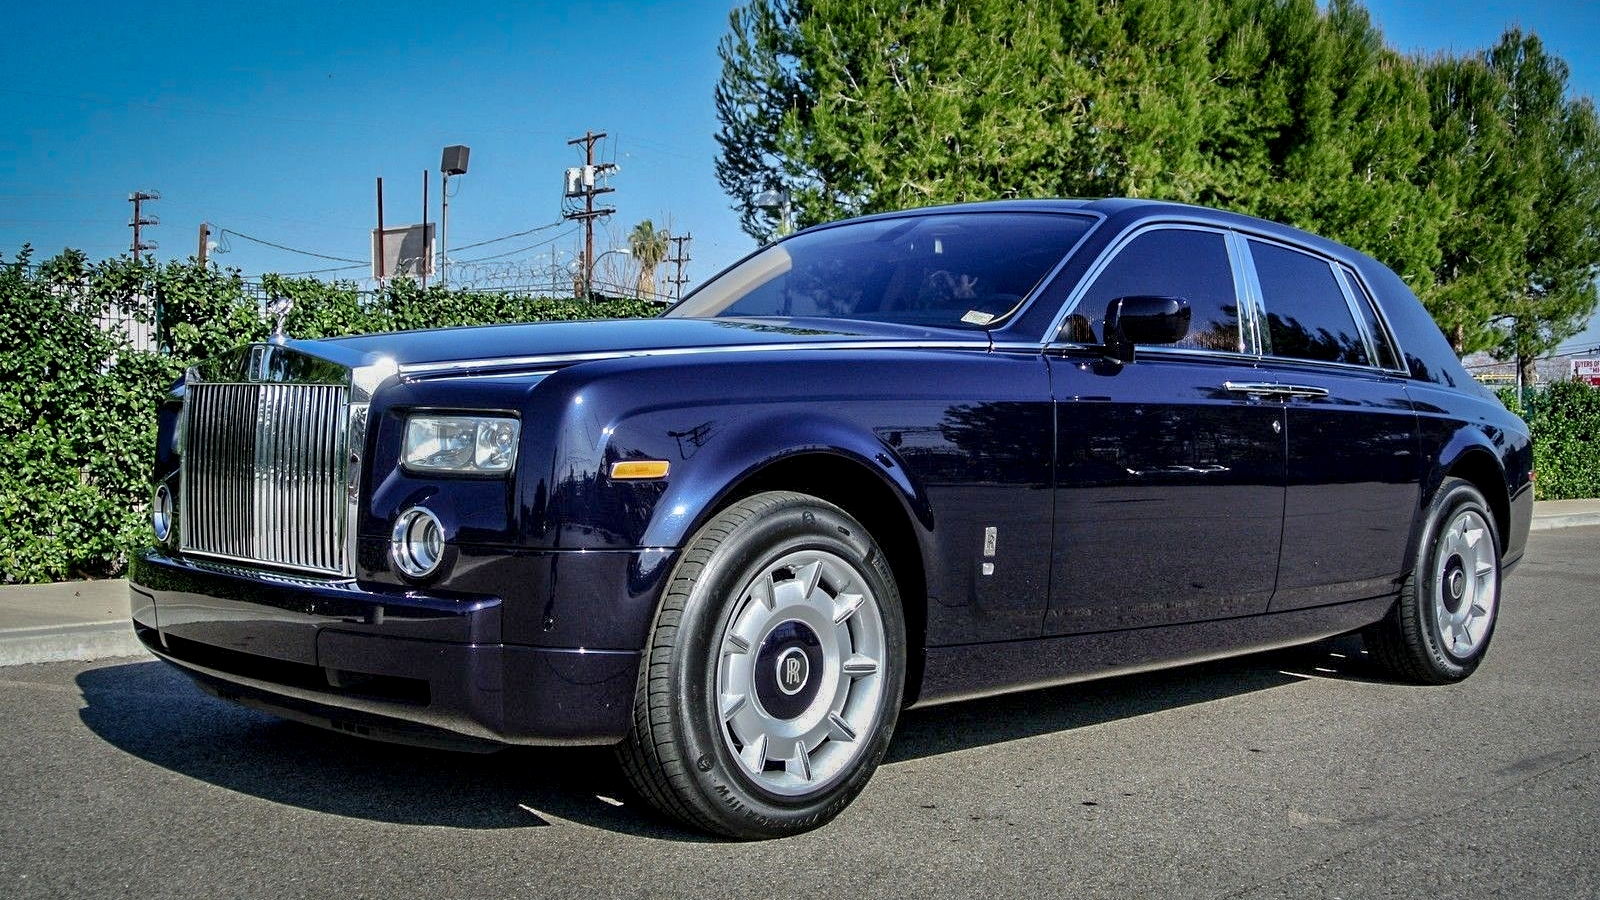 You Can Buy A Rolls Royce Phantom For $400,000 Off Its ...